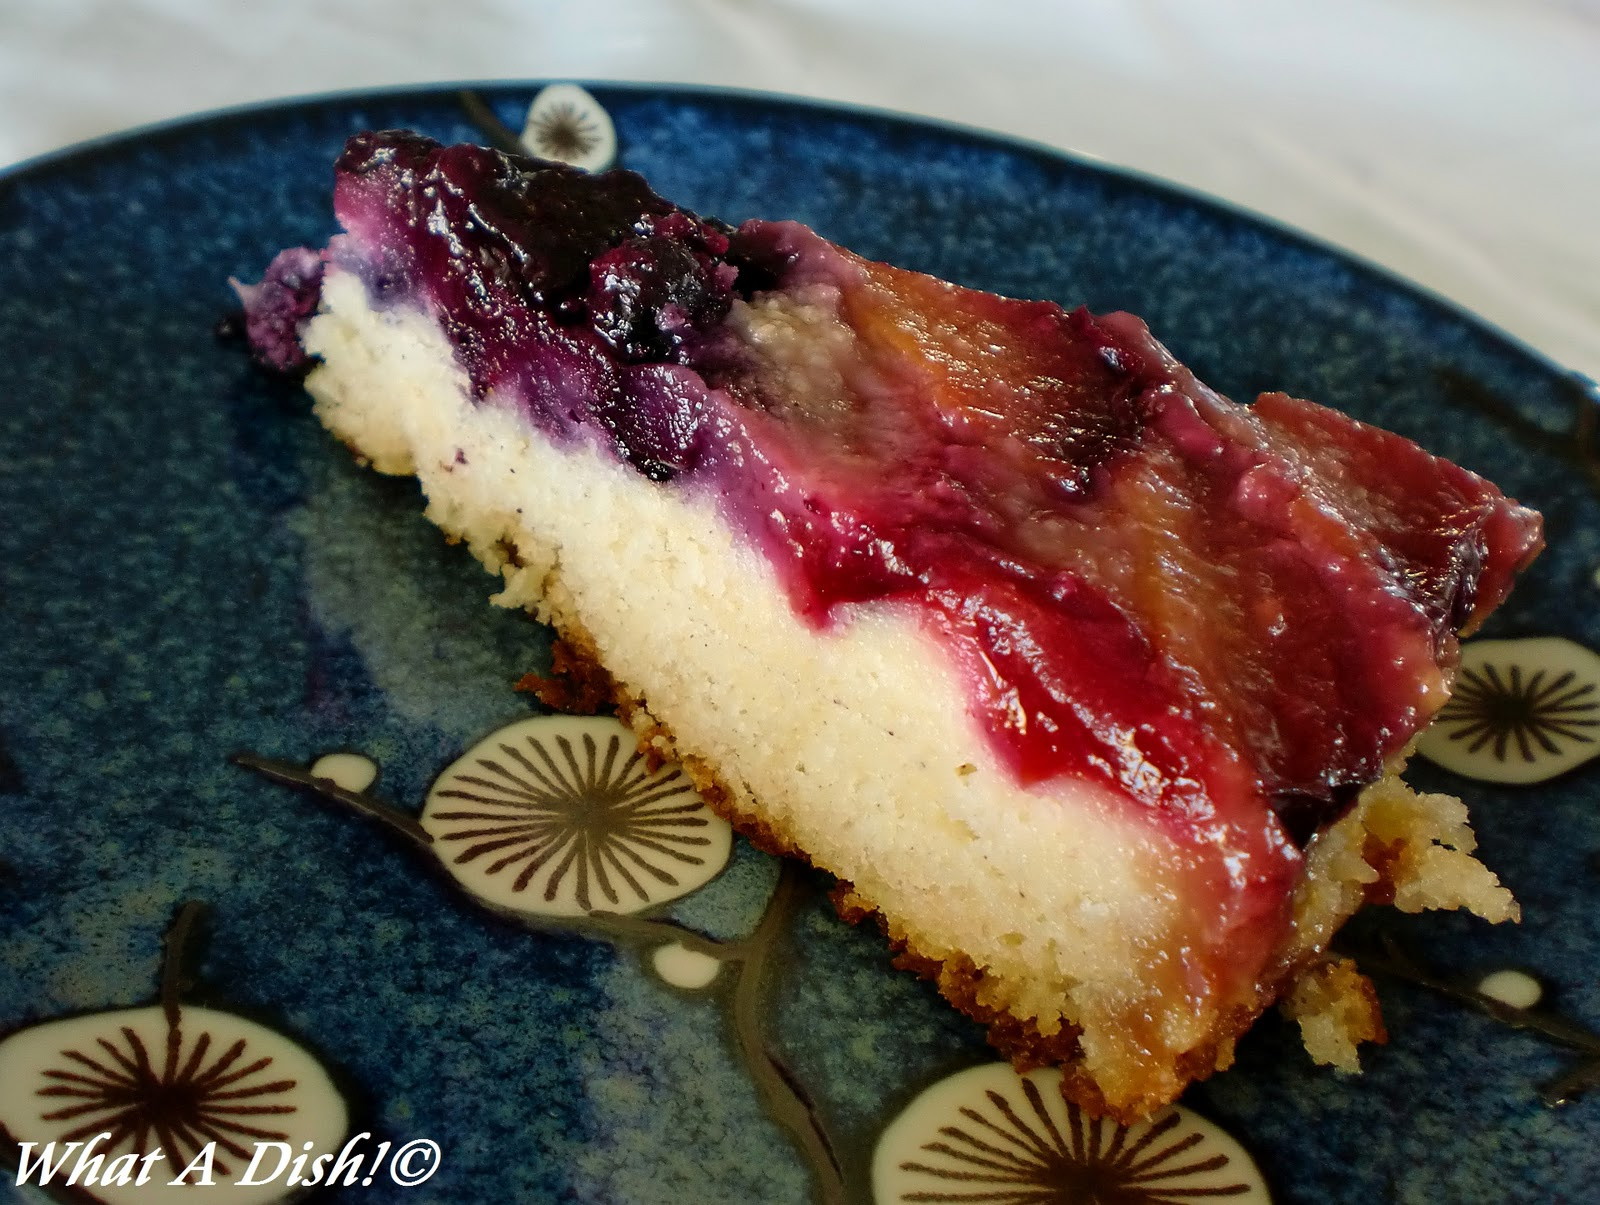 What A Dish!: Plum-Blueberry Upside Down Cake